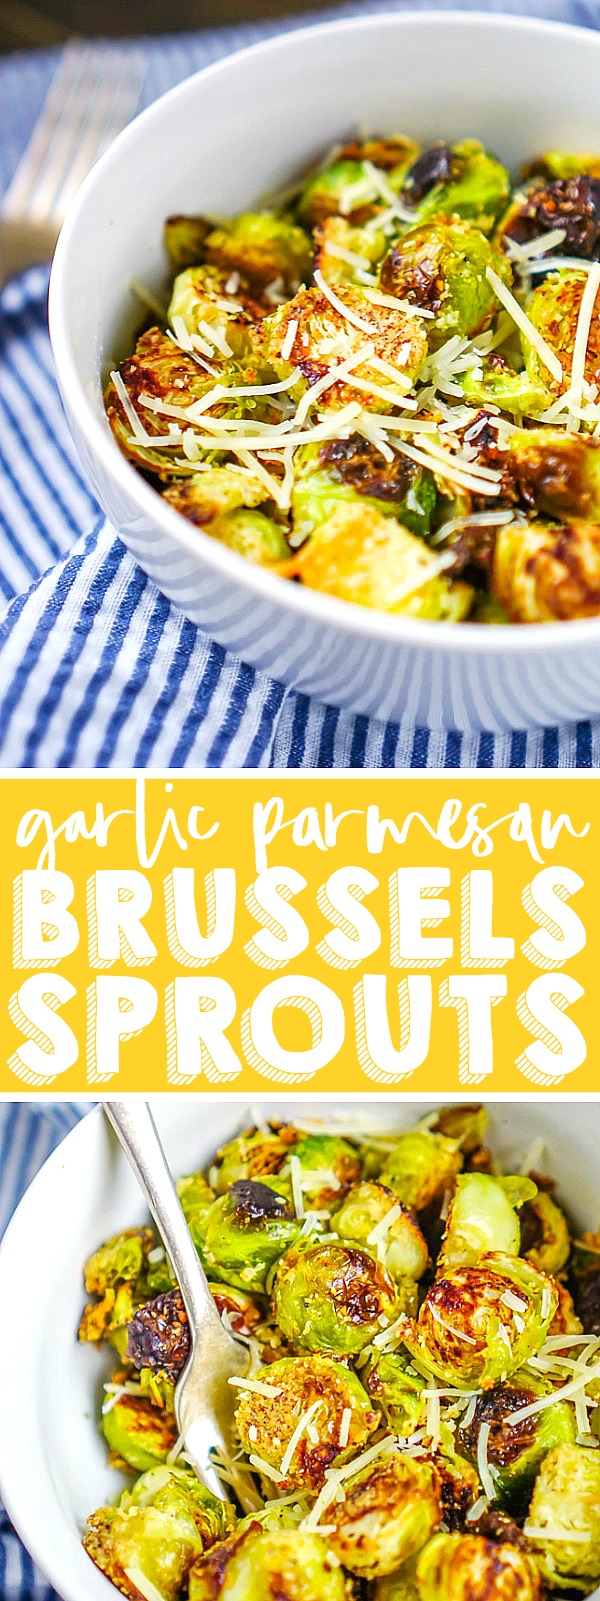 These oven roasted Brussels sprouts are lightly seasoned with garlic and parmesan, resulting in a winning flavor combination the whole family will love! Fresh, crunchy and so easy to make, this Brussels sprouts side dish is a winner!  Easy enough to make for a weeknight dinner OR as a holiday side dish! | THE LOVE NERDS #christmassidedish #thanksgivingsidedish #brusselssproutsrecipe #ovenroastedvegetable